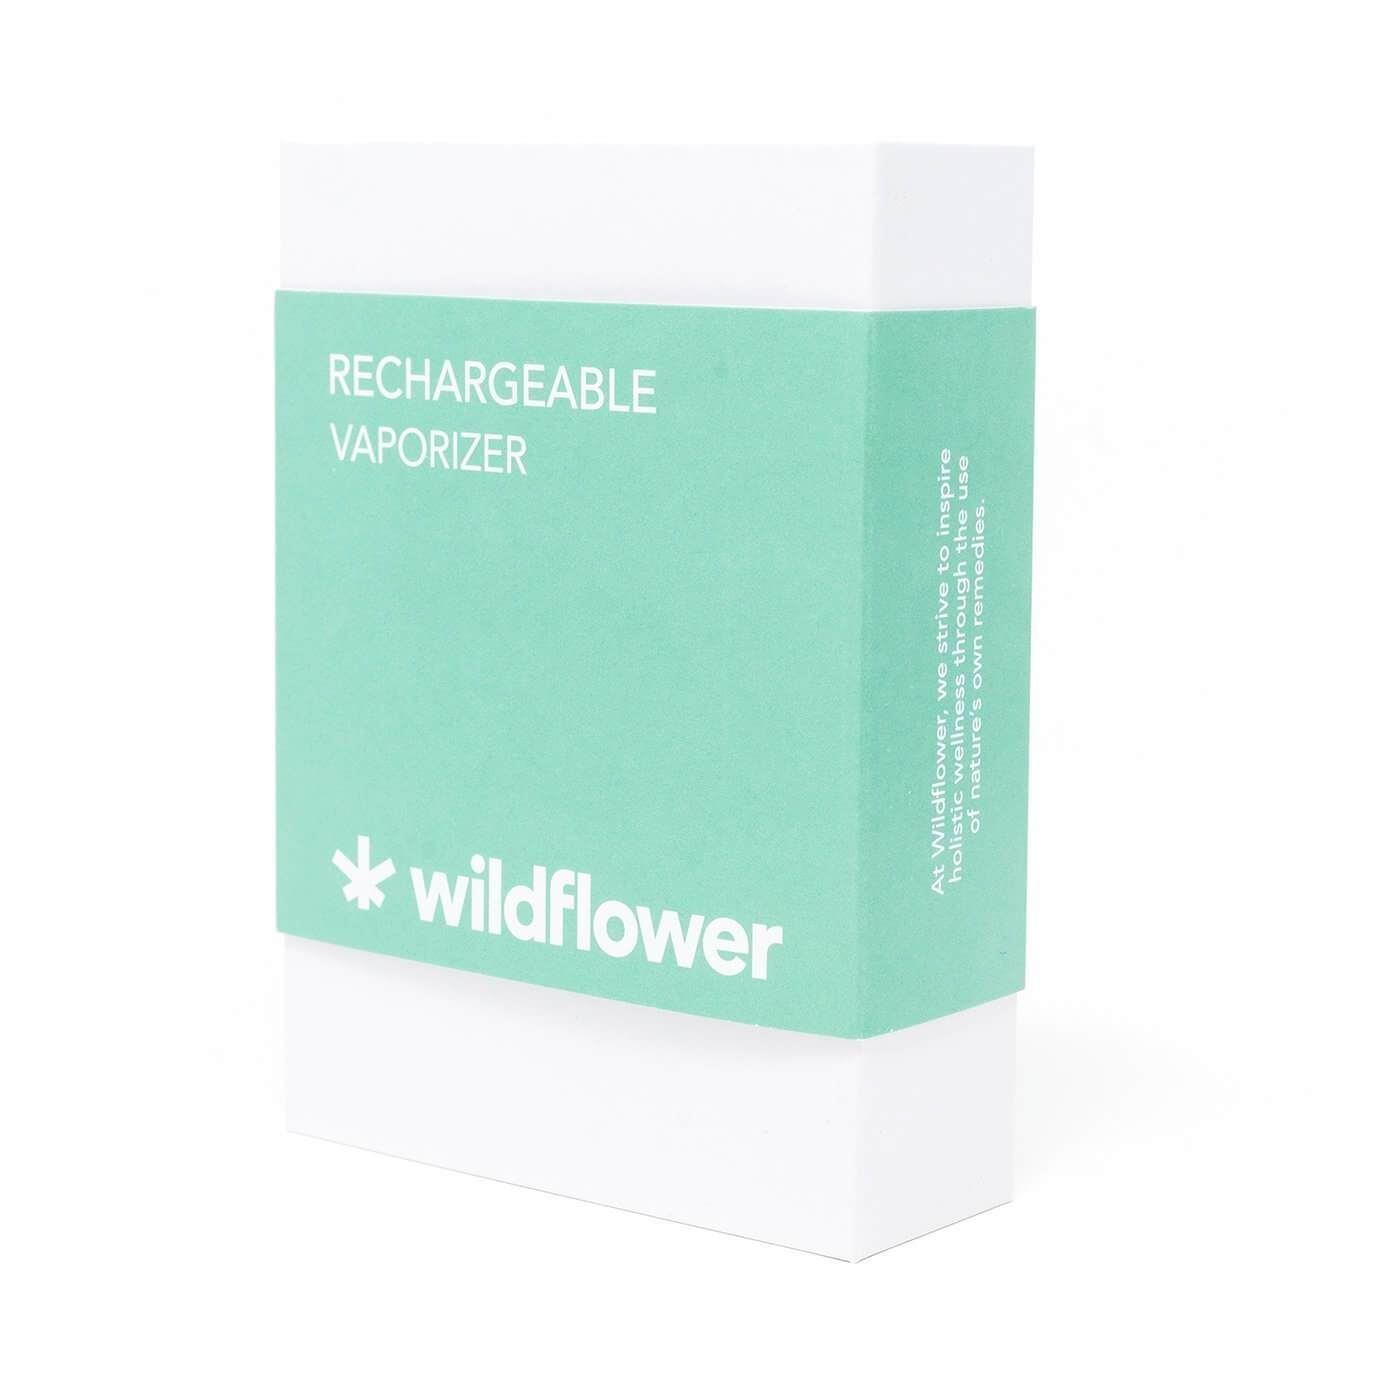 Aches CBD Rechargeable V2 | Wildflower Wellness